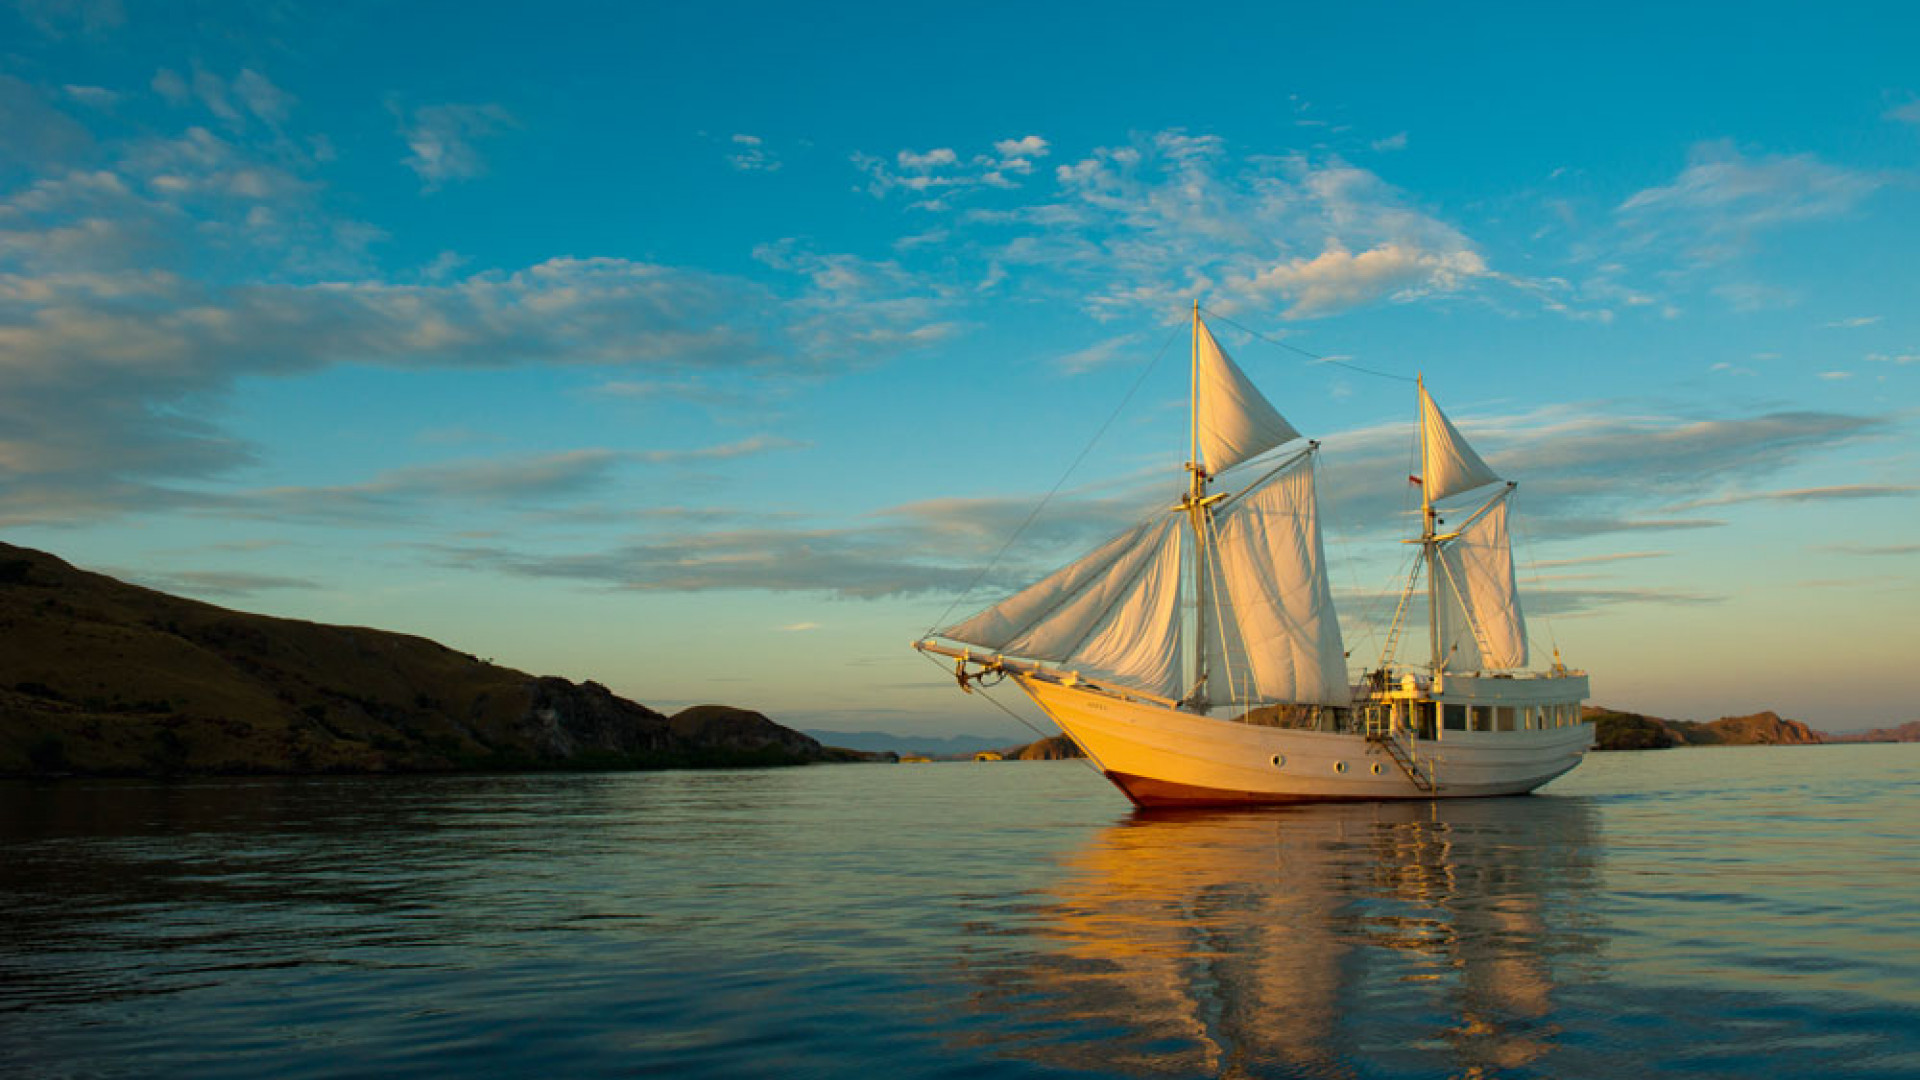 A phinisi yacht in Indonesia